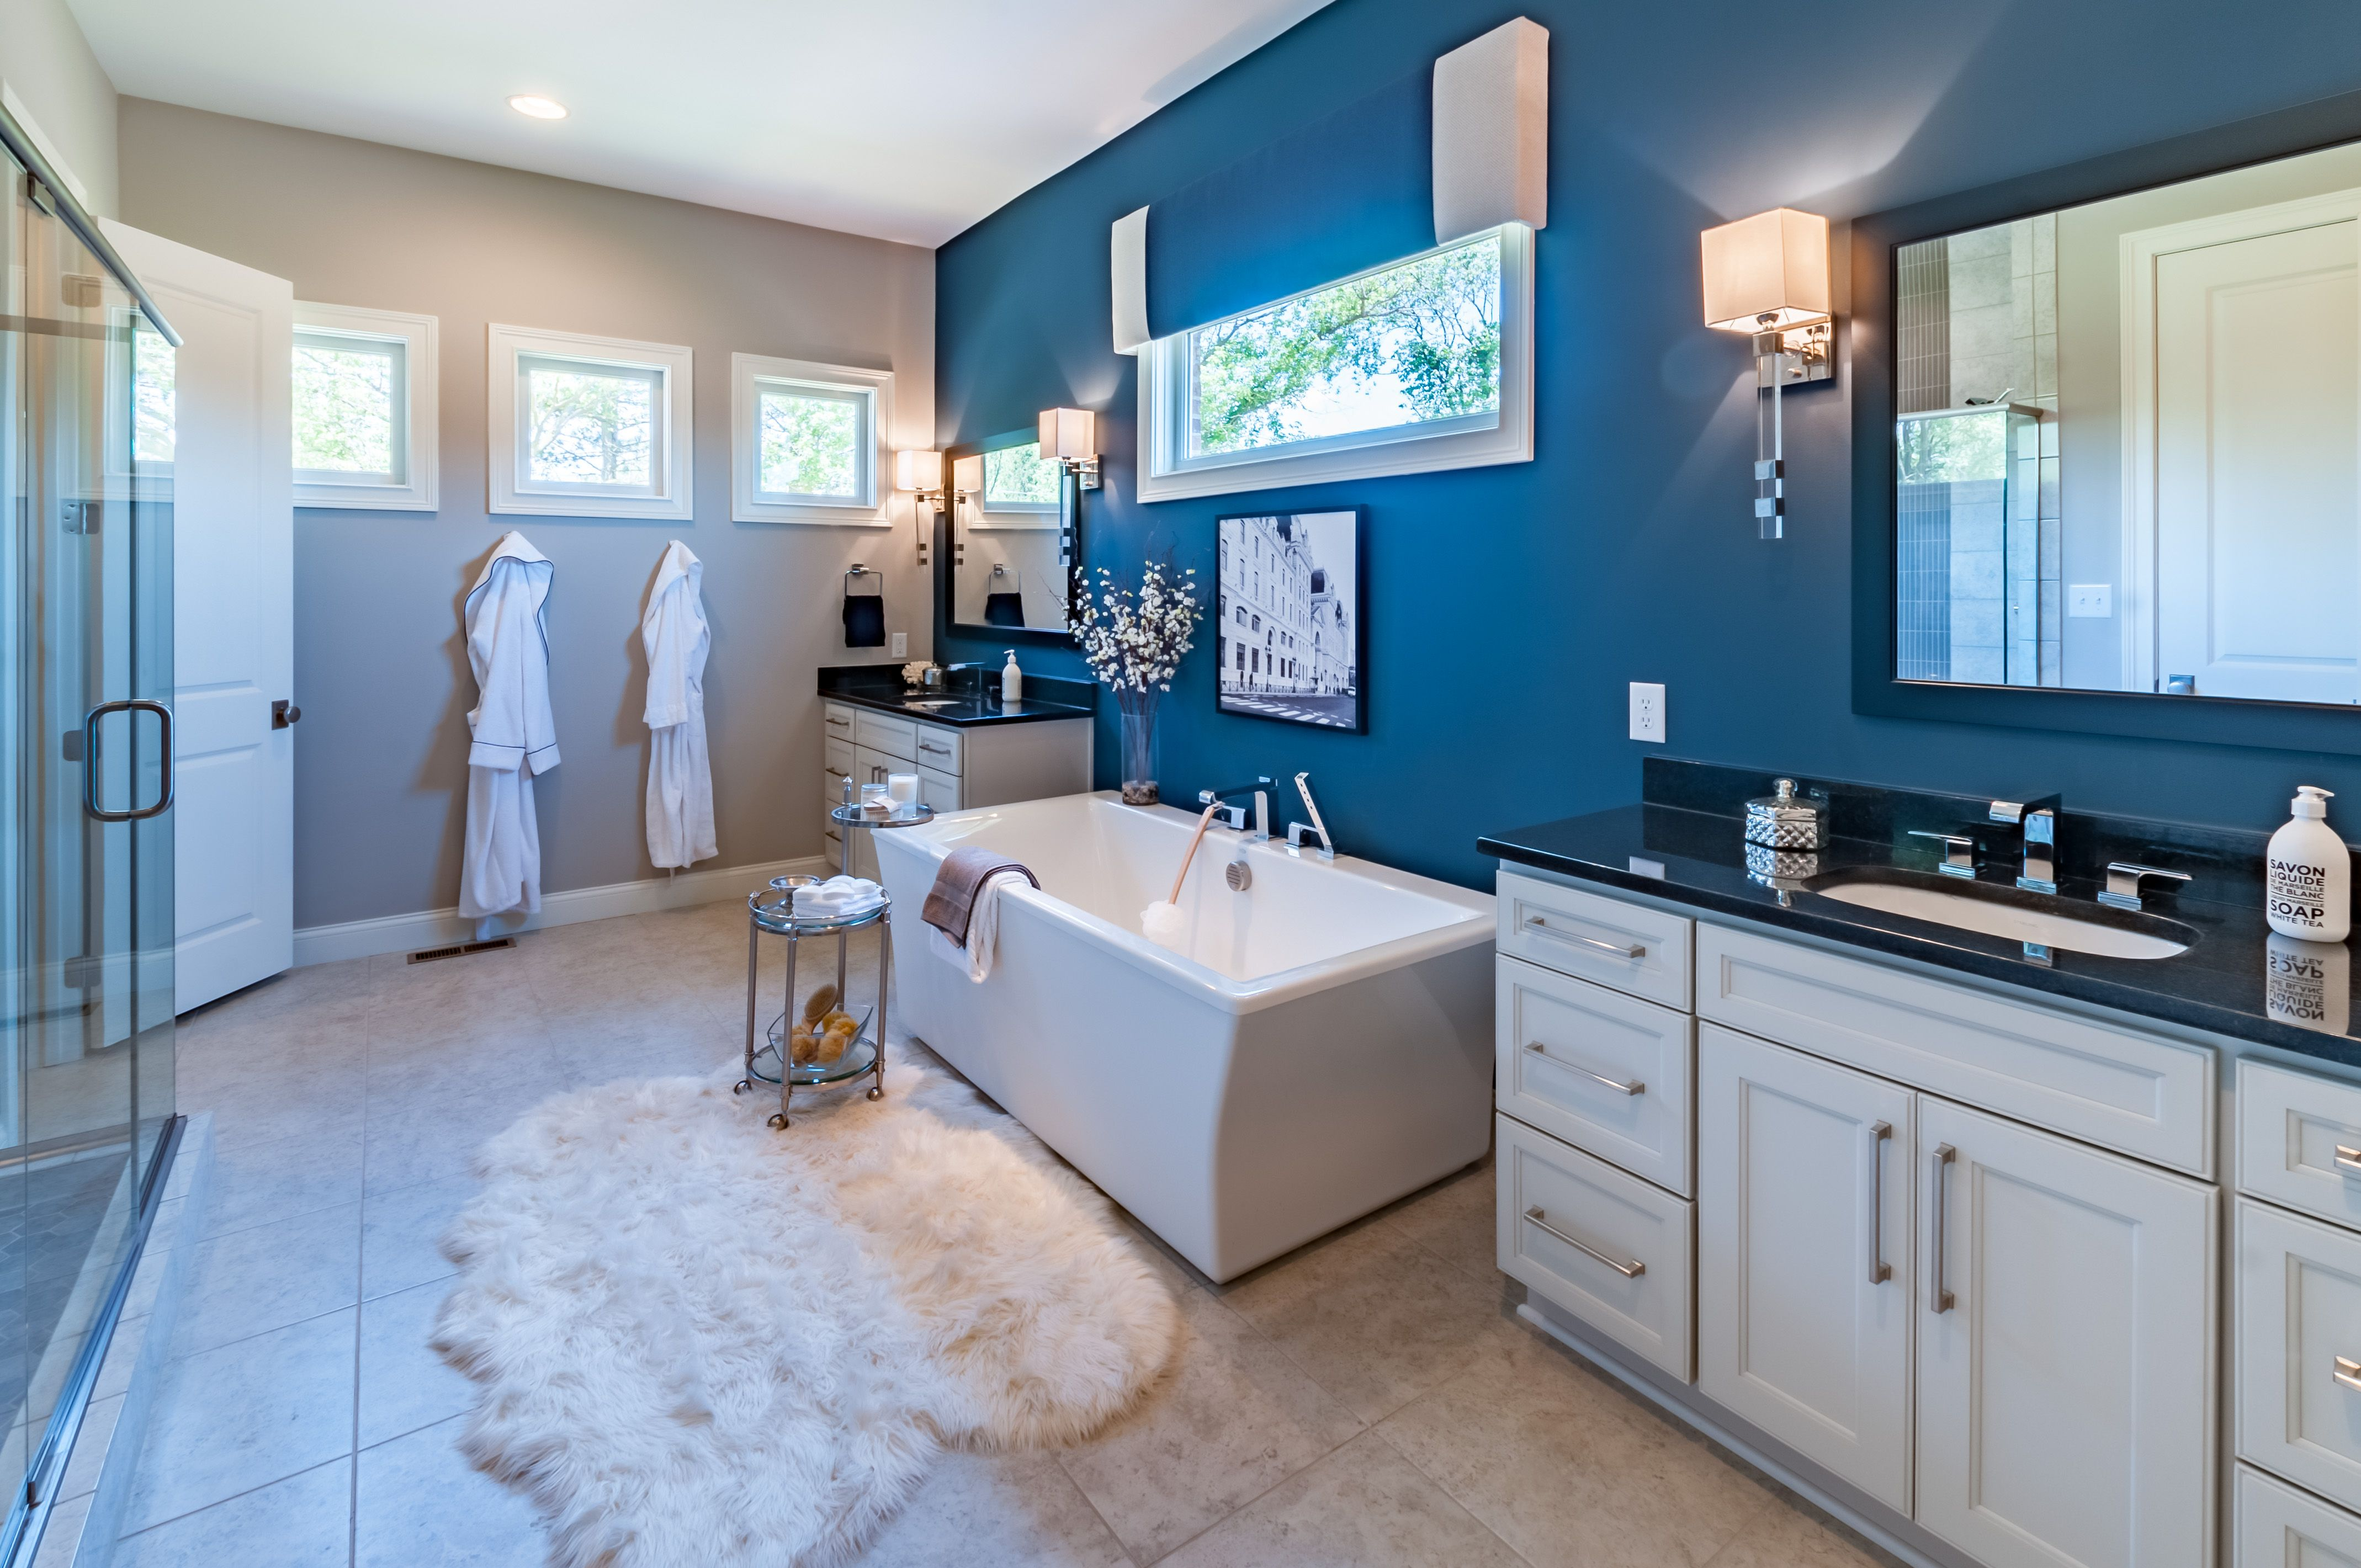 Bathroom featured in the Rookwood By Fischer Homes  in Indianapolis, IN